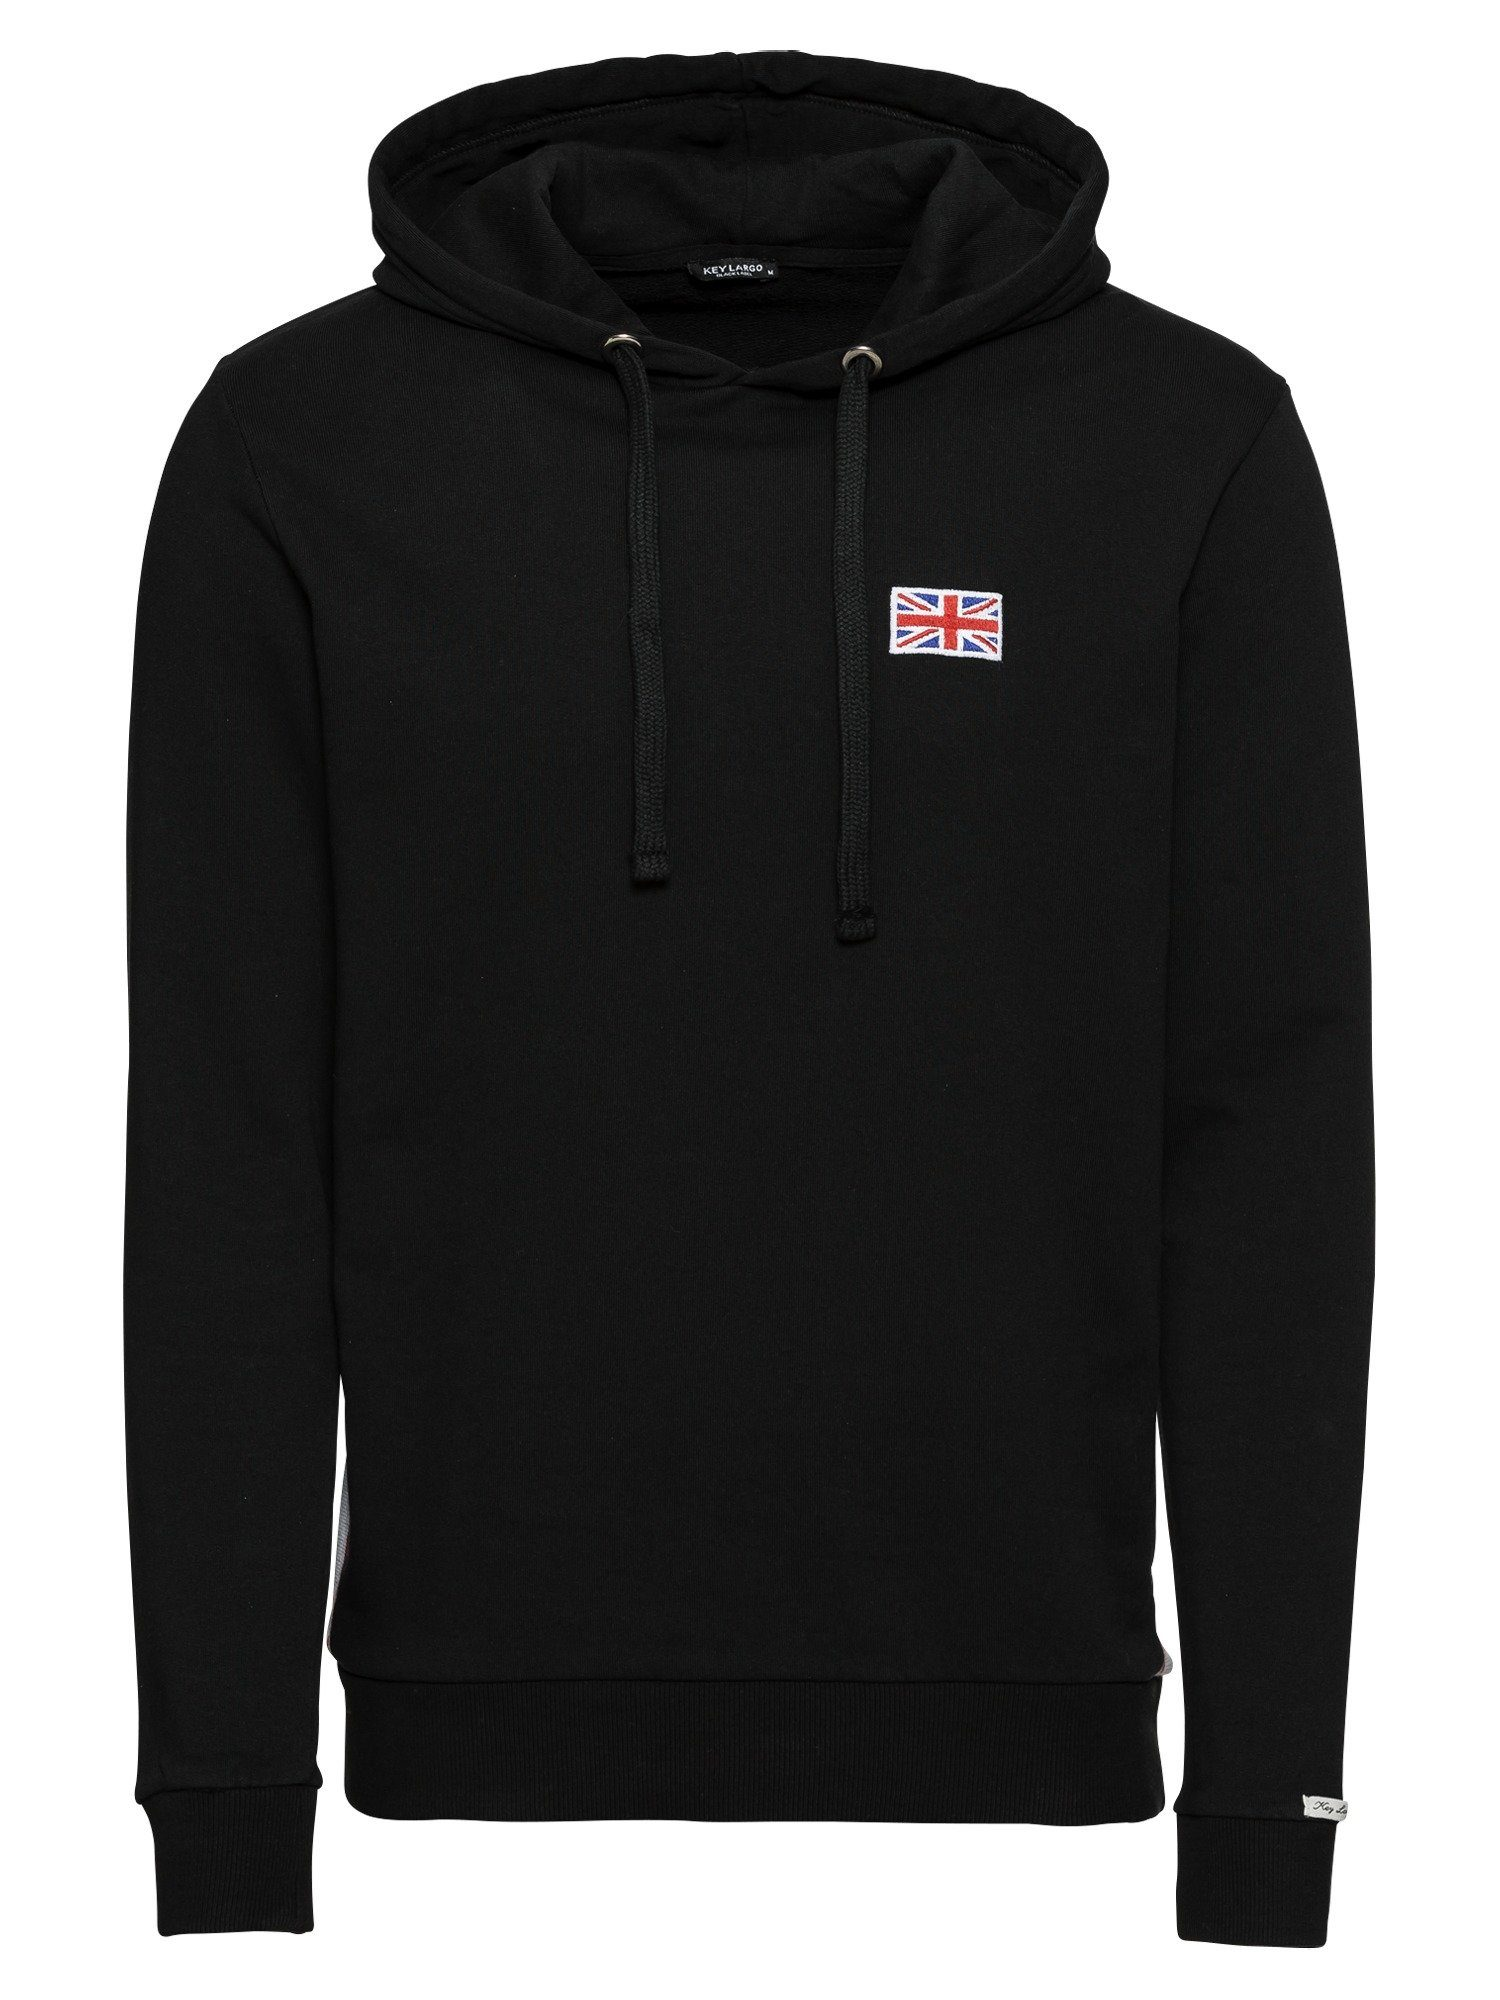 Key Largo Kapuzensweatshirt »MSW LONDON hoody«